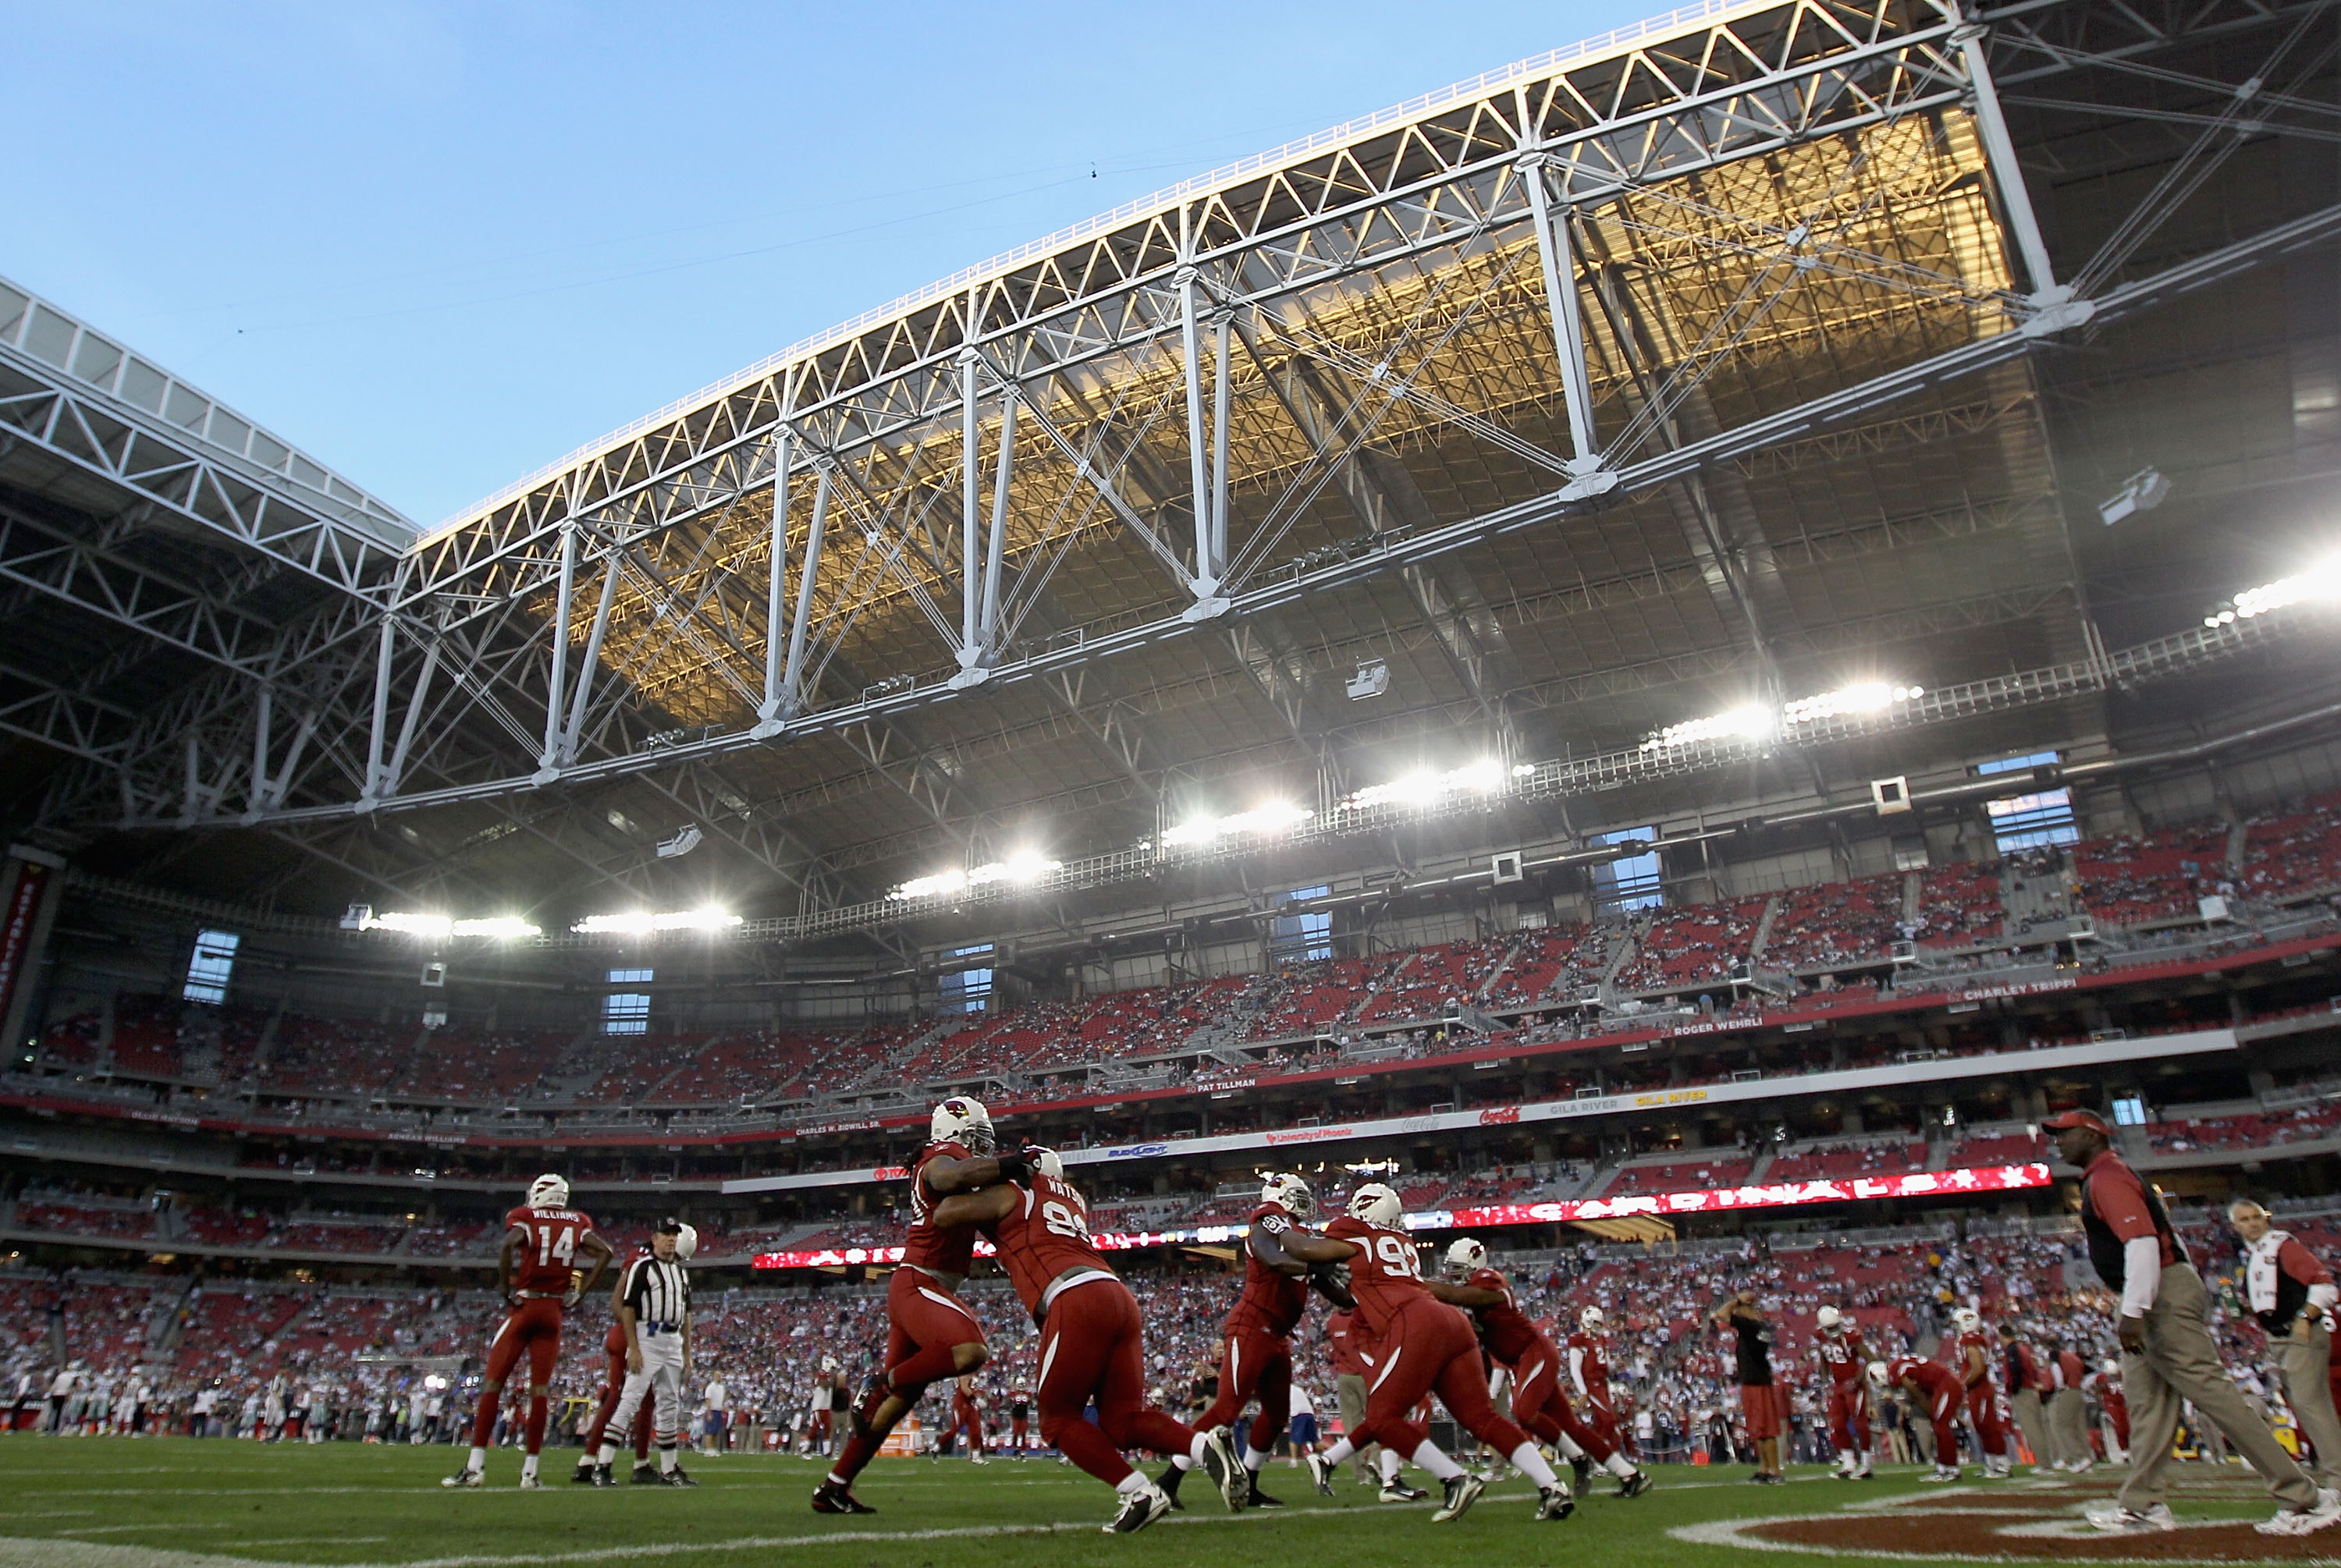 GLENDALE, AZ - DECEMBER 25:  The Arizona Cardinals warm up before the NFL game against the Dallas Cowboys at the University of Phoenix Stadium on December 25, 2010 in Glendale, Arizona.  The Cardinals defeated the Cowboys 27-26. (Photo by Christian Peters